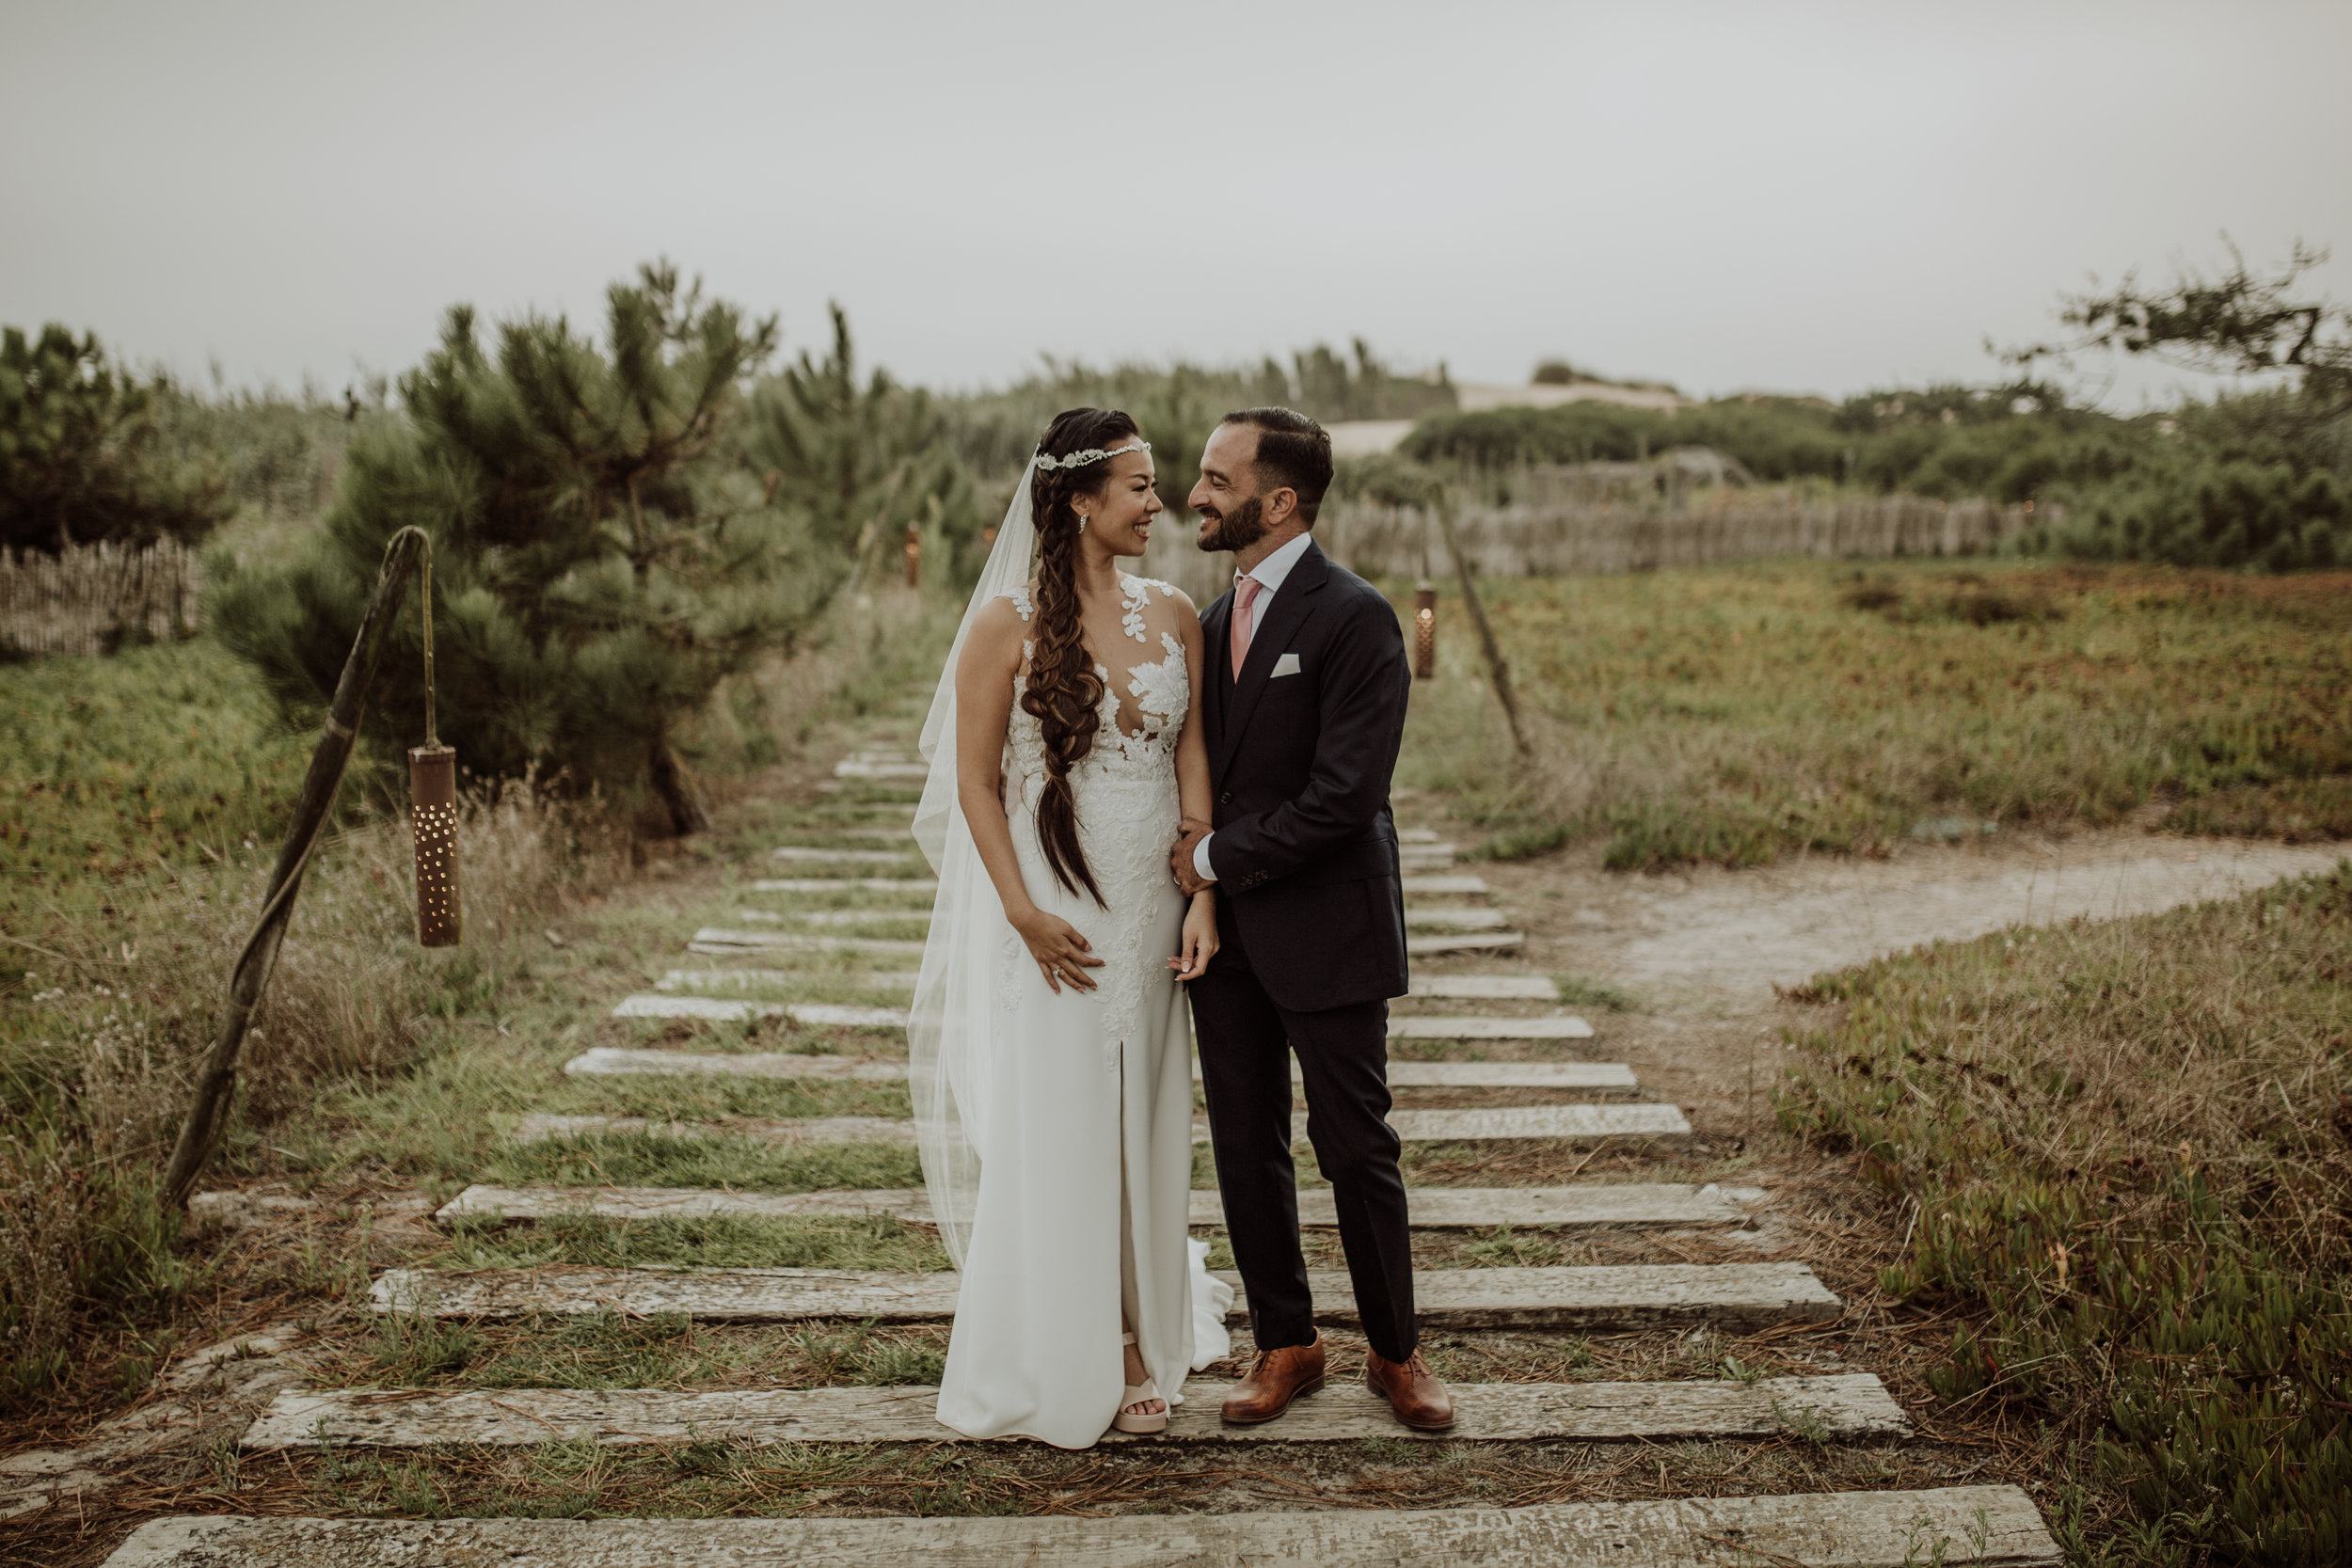 Y&M_952_15_September_2018WEDDING_DAY.jpg